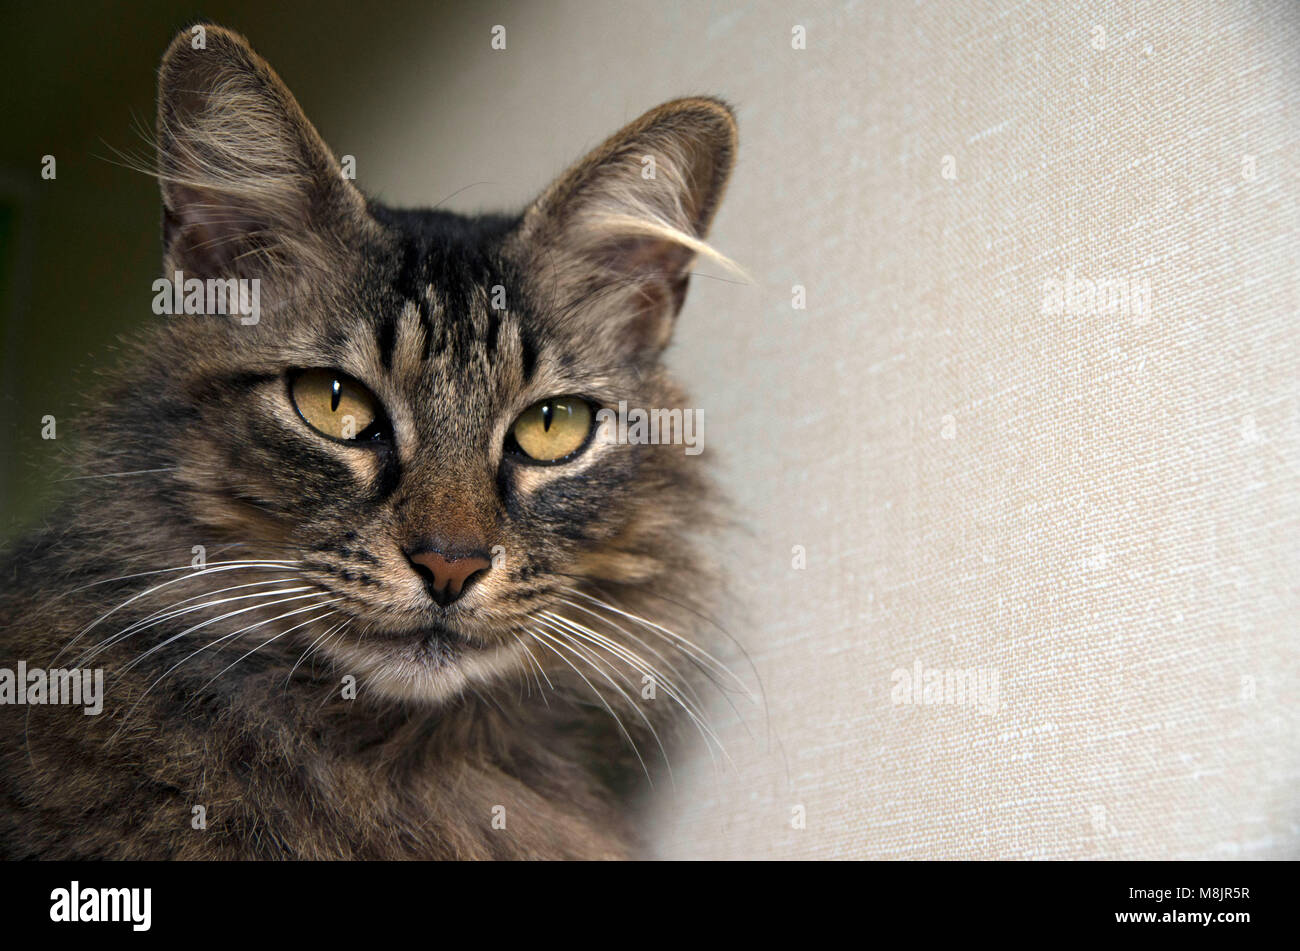 A cat waits patiently to be adopted at the local animal shelter. Stock Photo